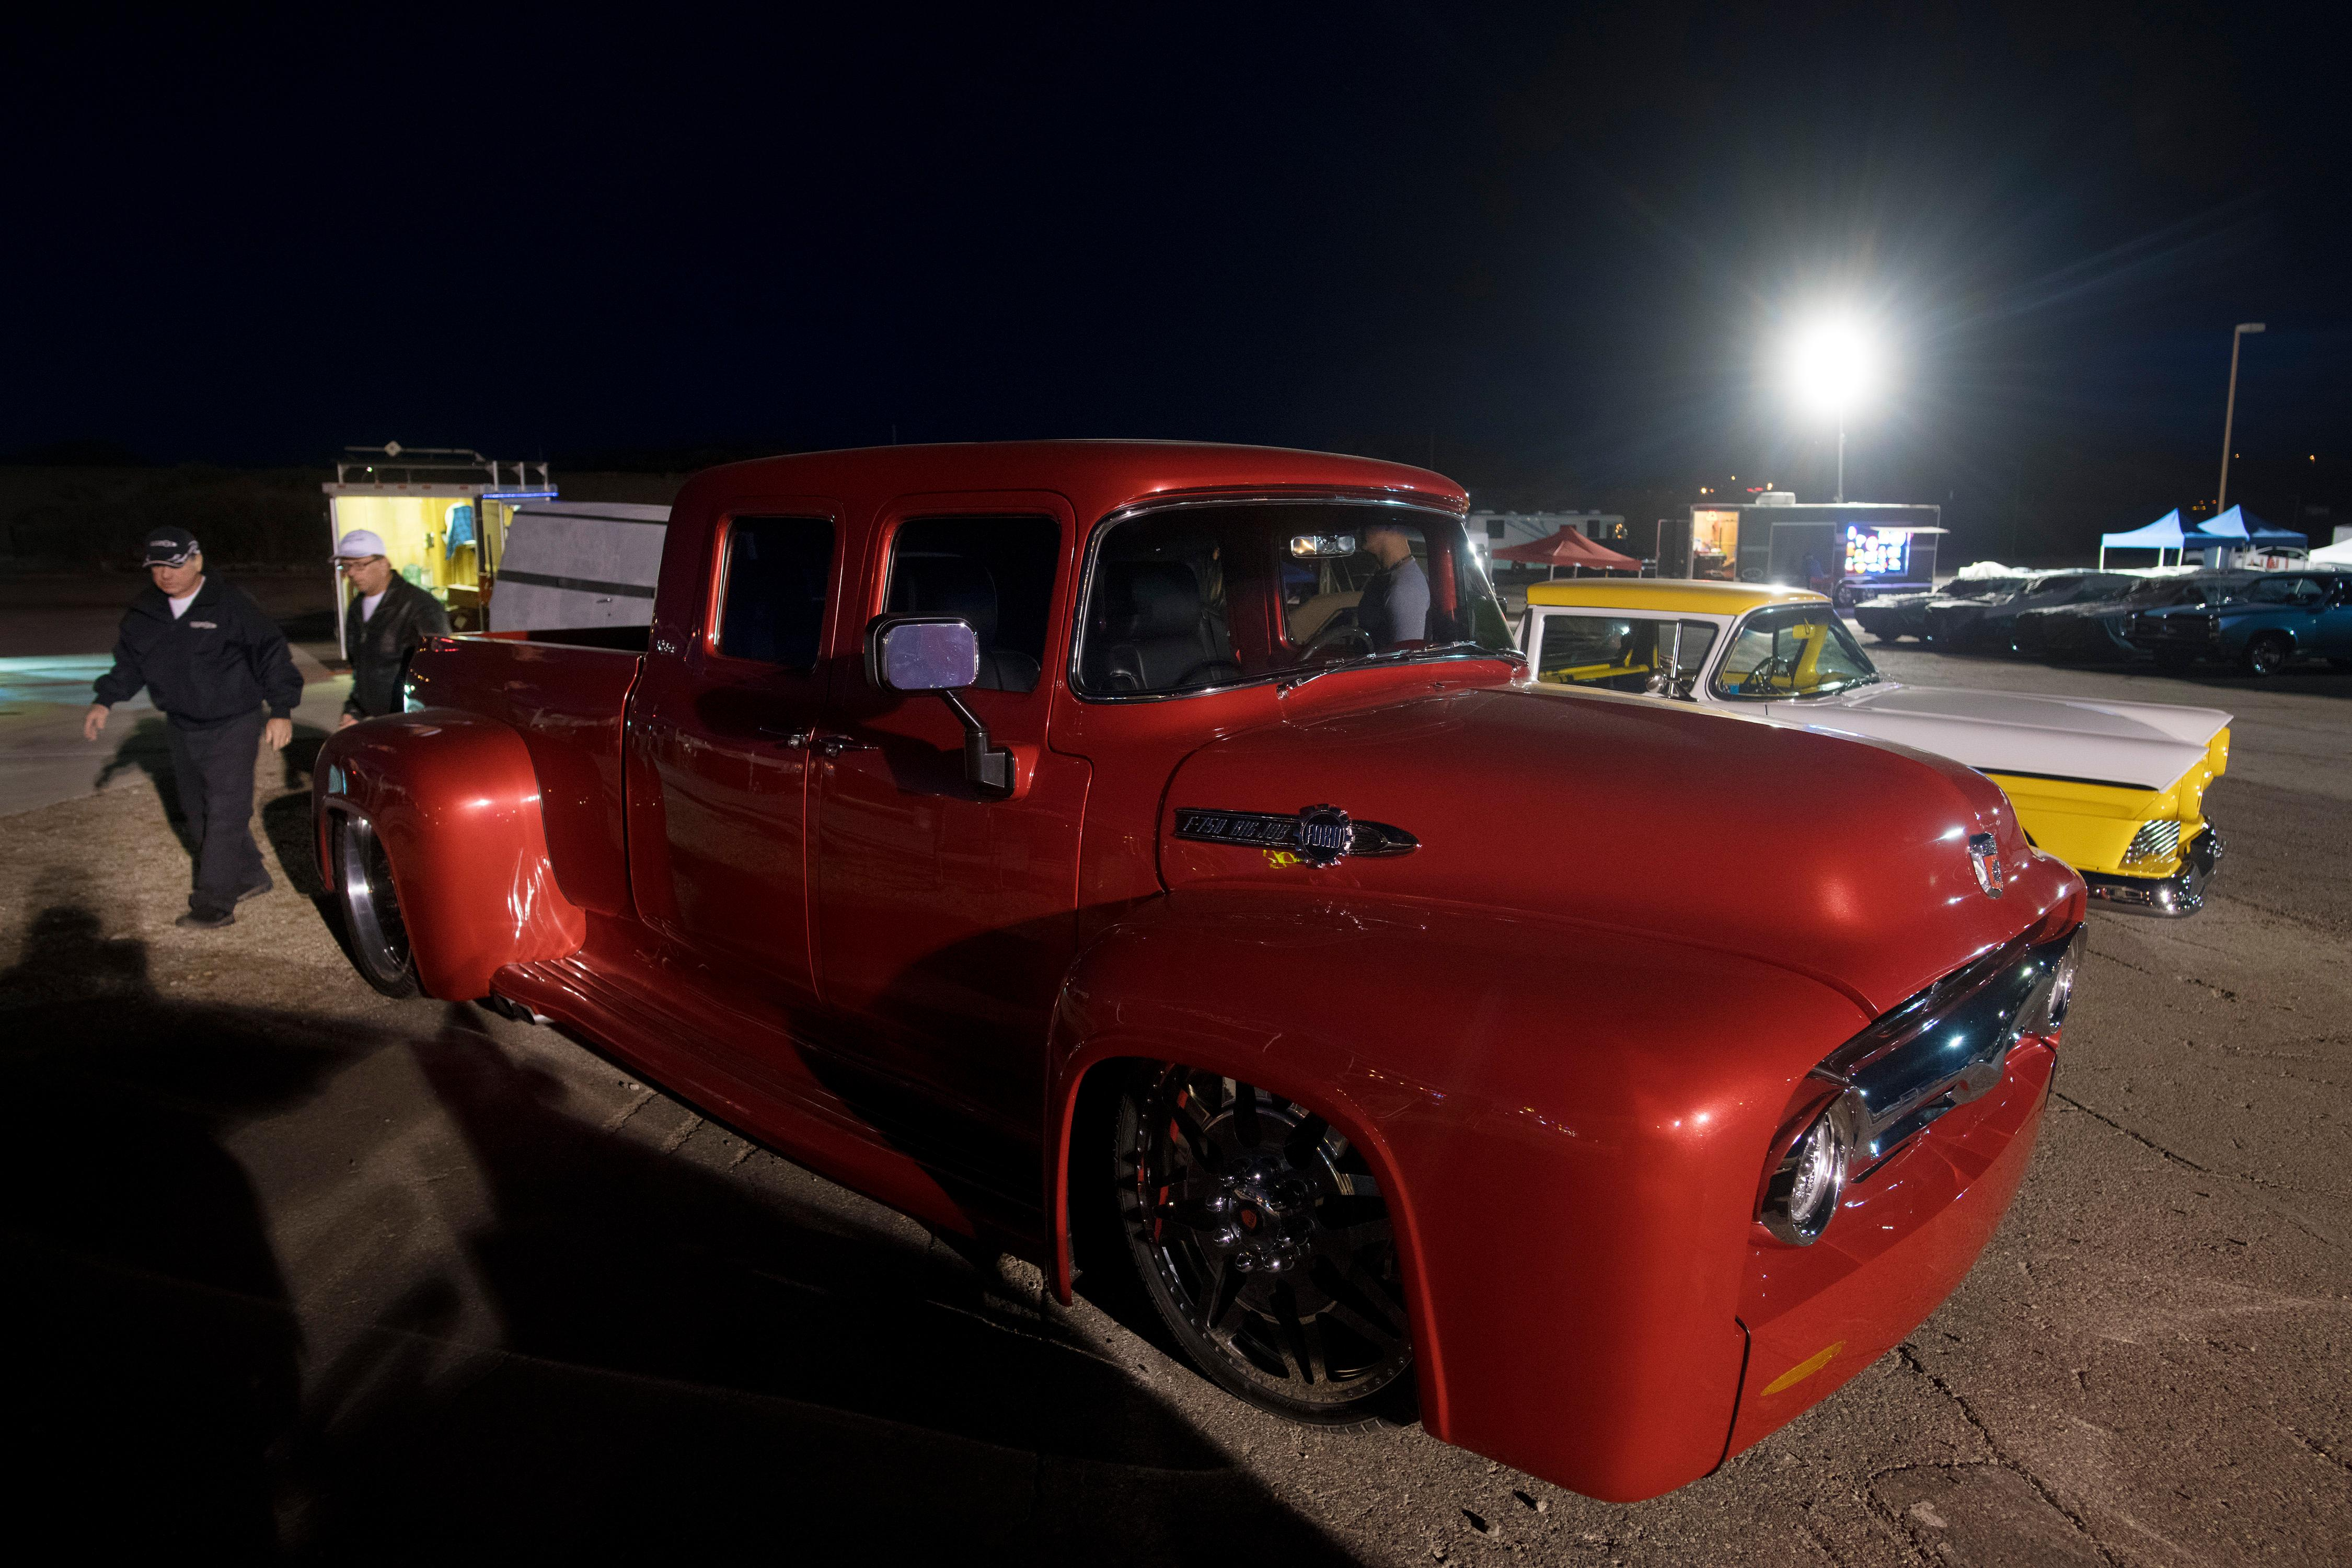 A custom Ford F150 is seen during the Mesquite Motor Mania car show Saturday, January 13, 2018, in Mesquite. CREDIT: Sam Morris/Las Vegas News Bureau